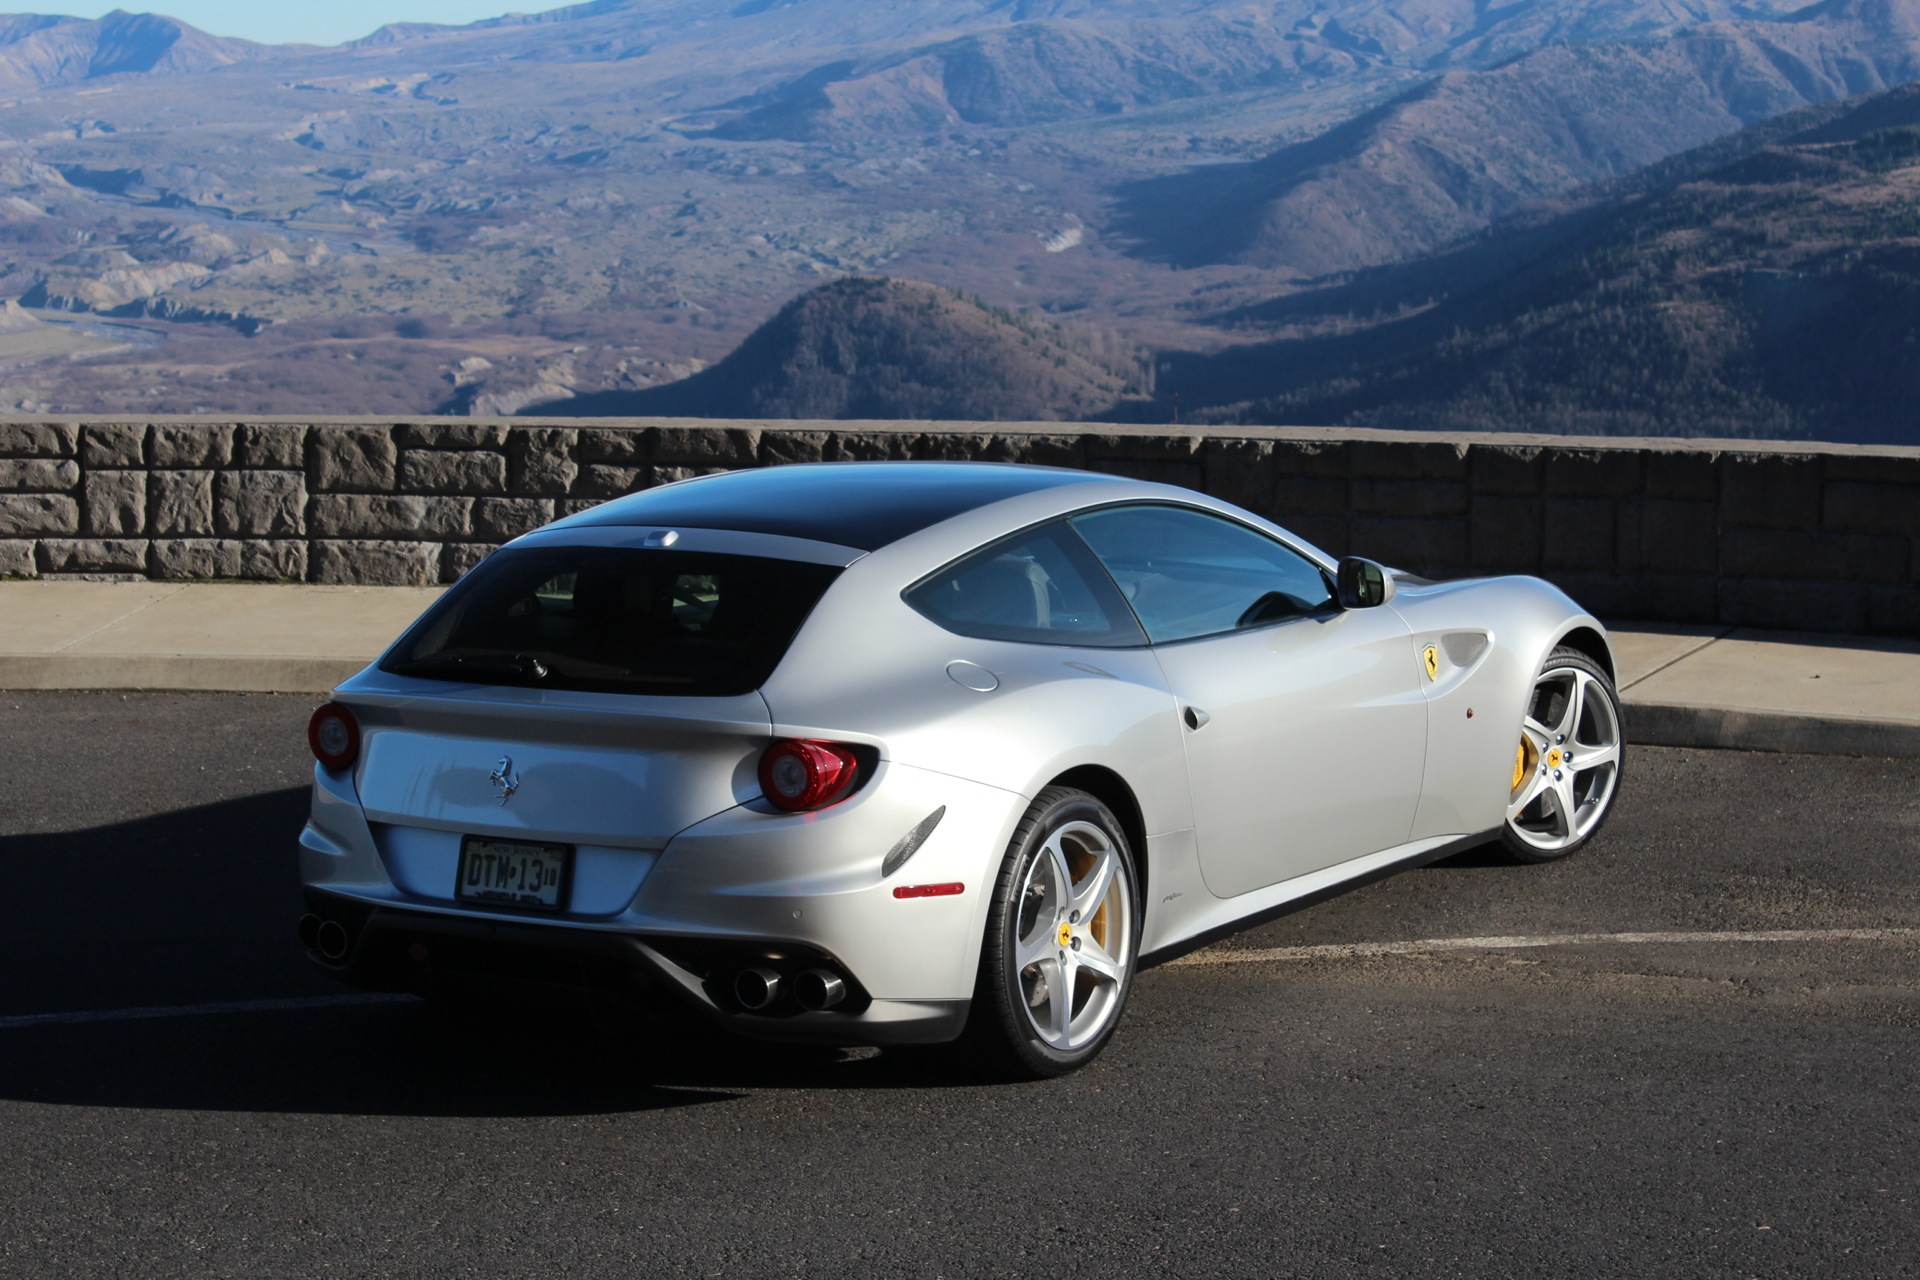 2015 ferrari ff first drive review (page 3)